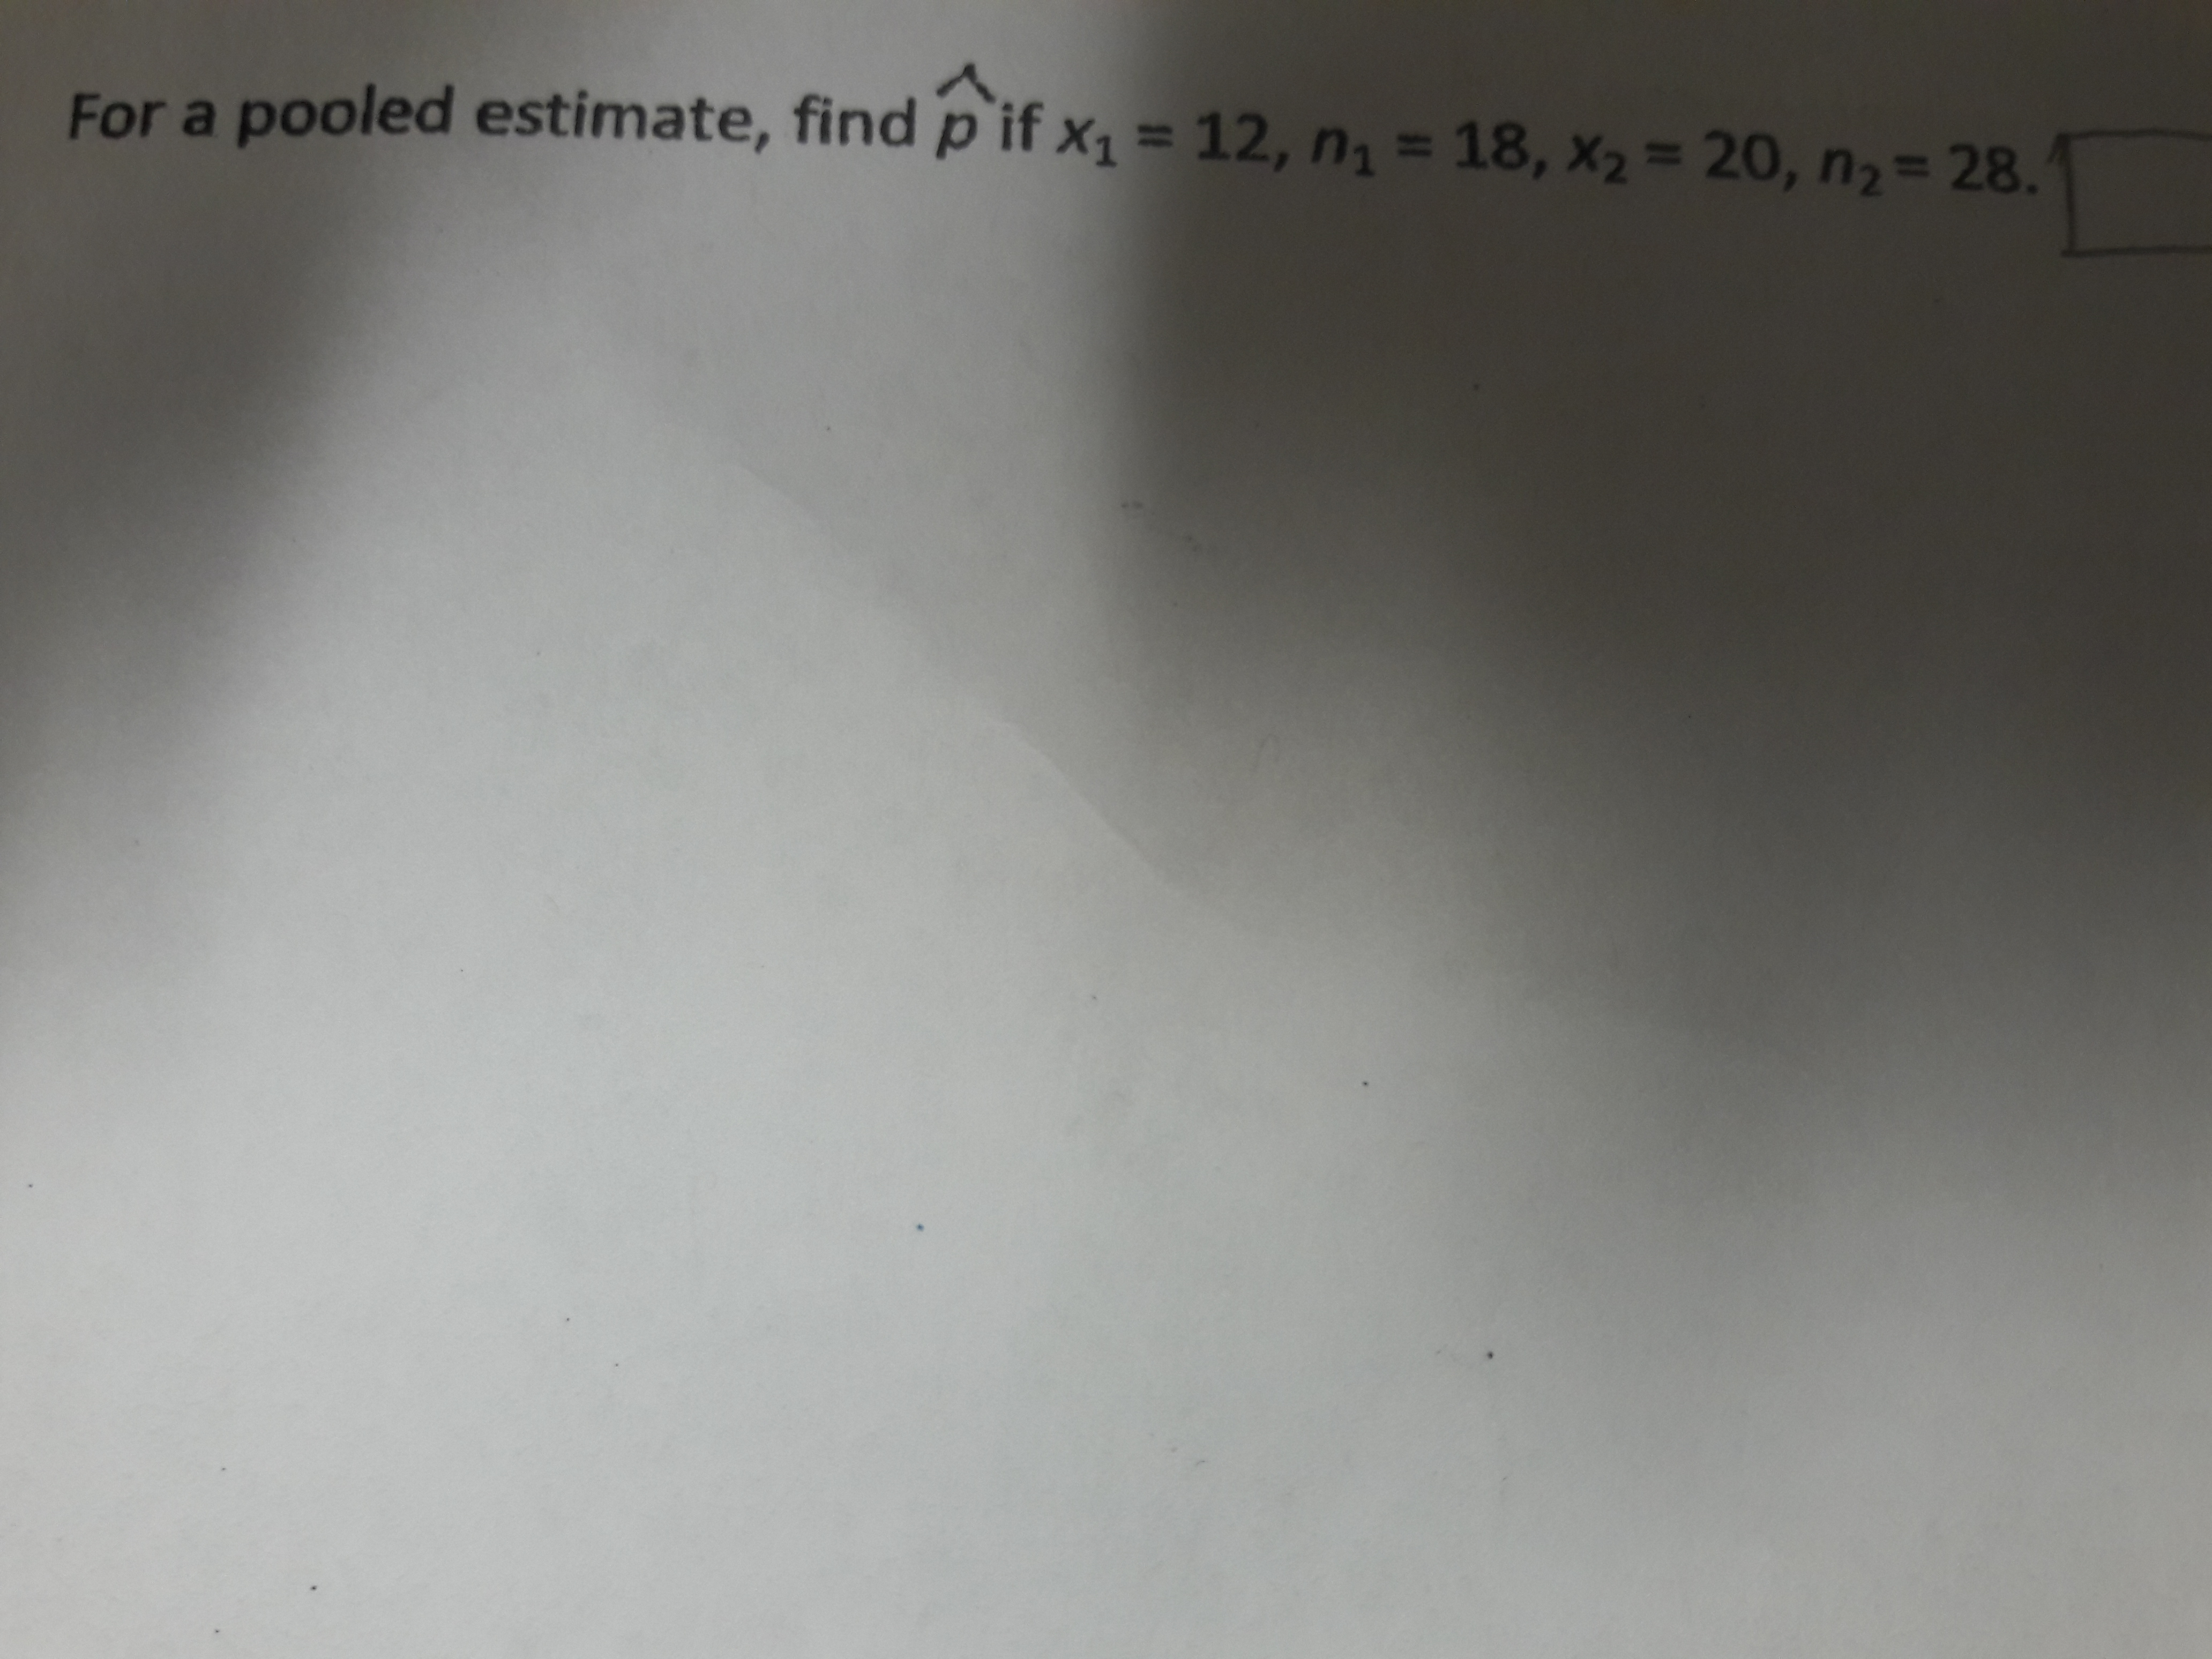 For a pooled estimate, find p if x1 = 12, n = 18, x2= 20, n,= 28.